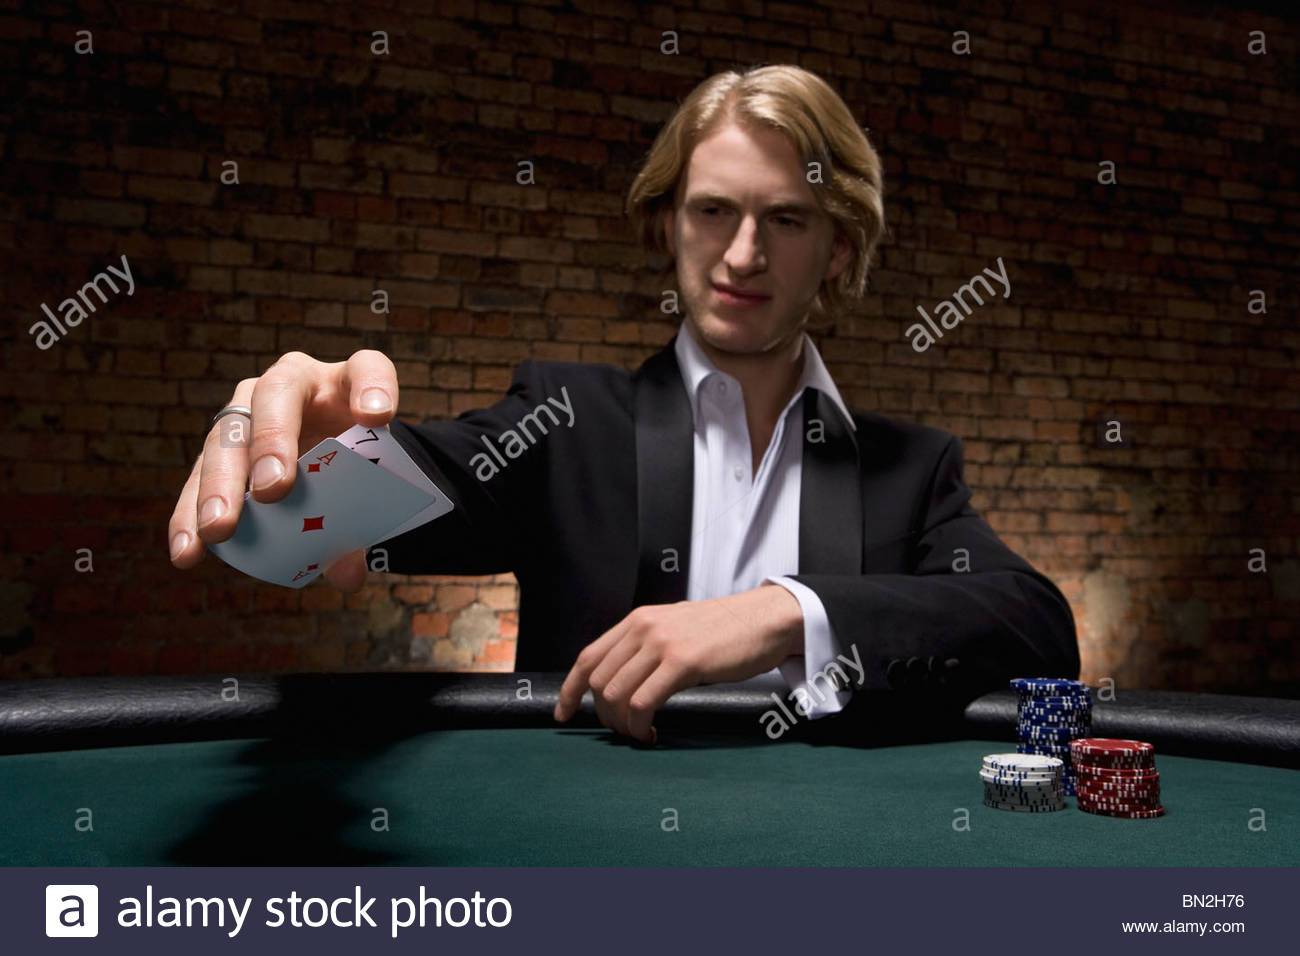 Man dropping cards on table in casino - Stock Image